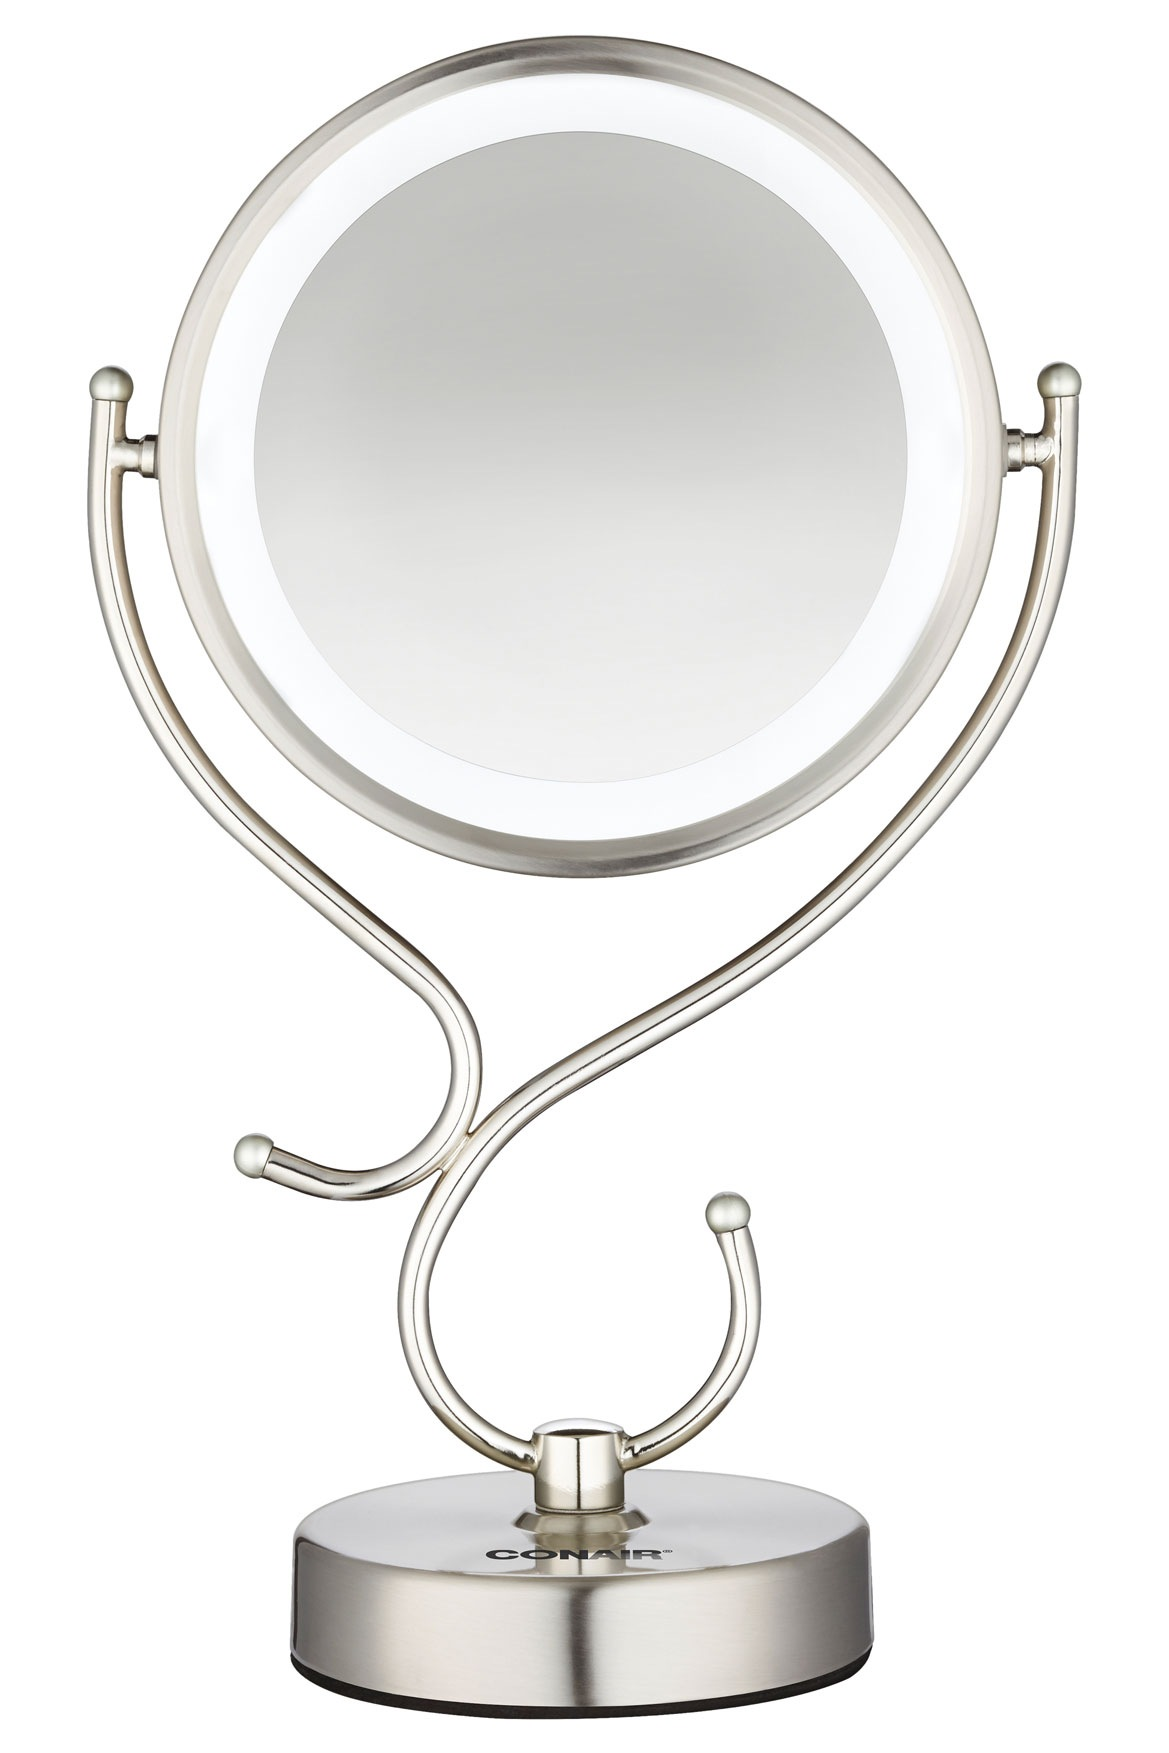 Conair cbe127a touch control led lighted mirror myer online mozeypictures Image collections